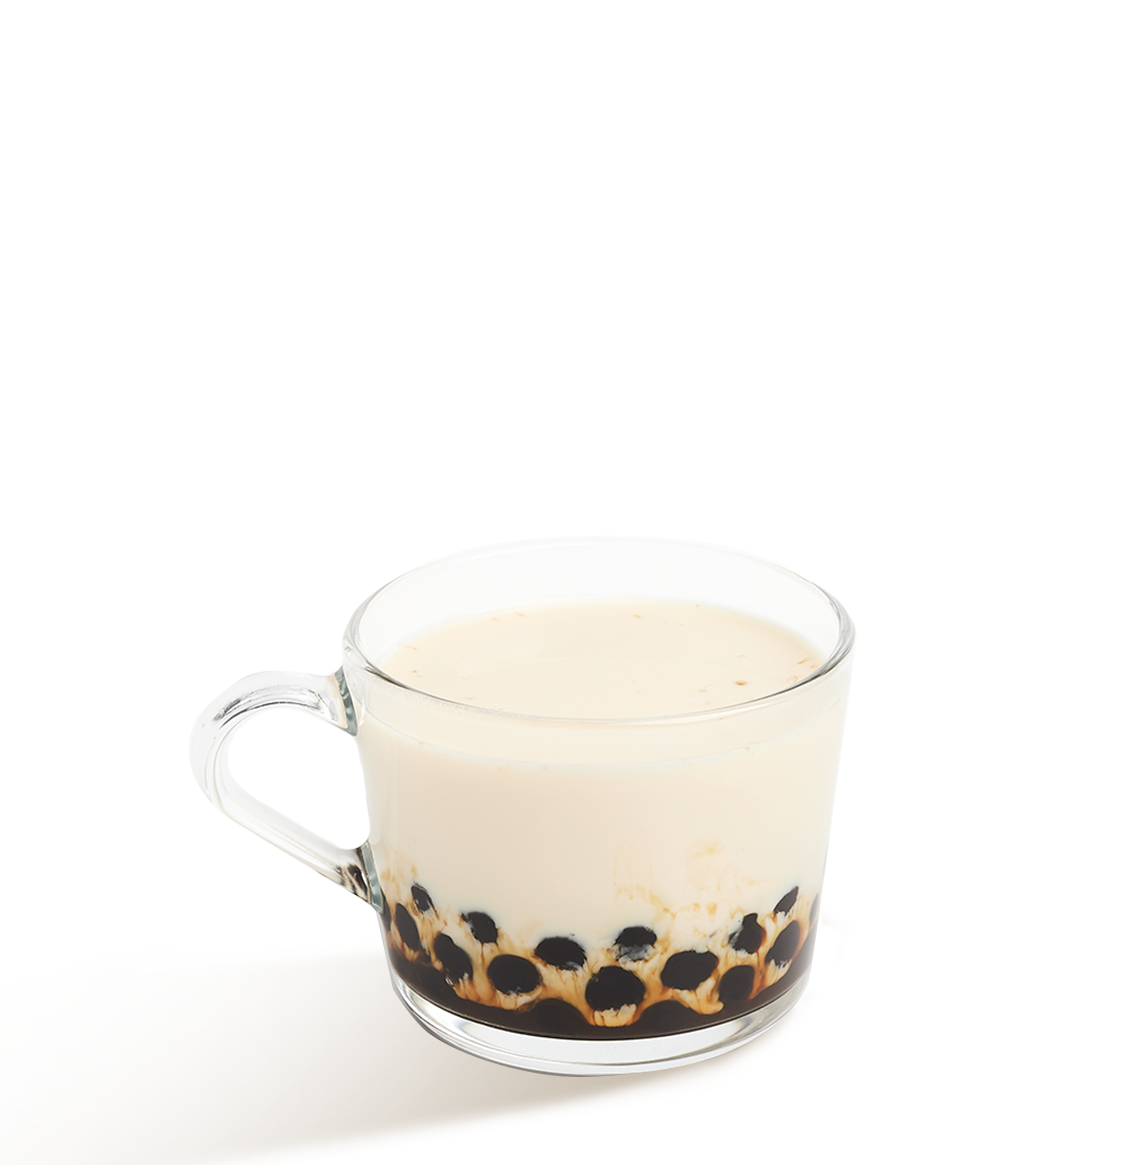 Mount Wu Pearl Milk Tea (Hot)珍丸清龙茶奶(热)